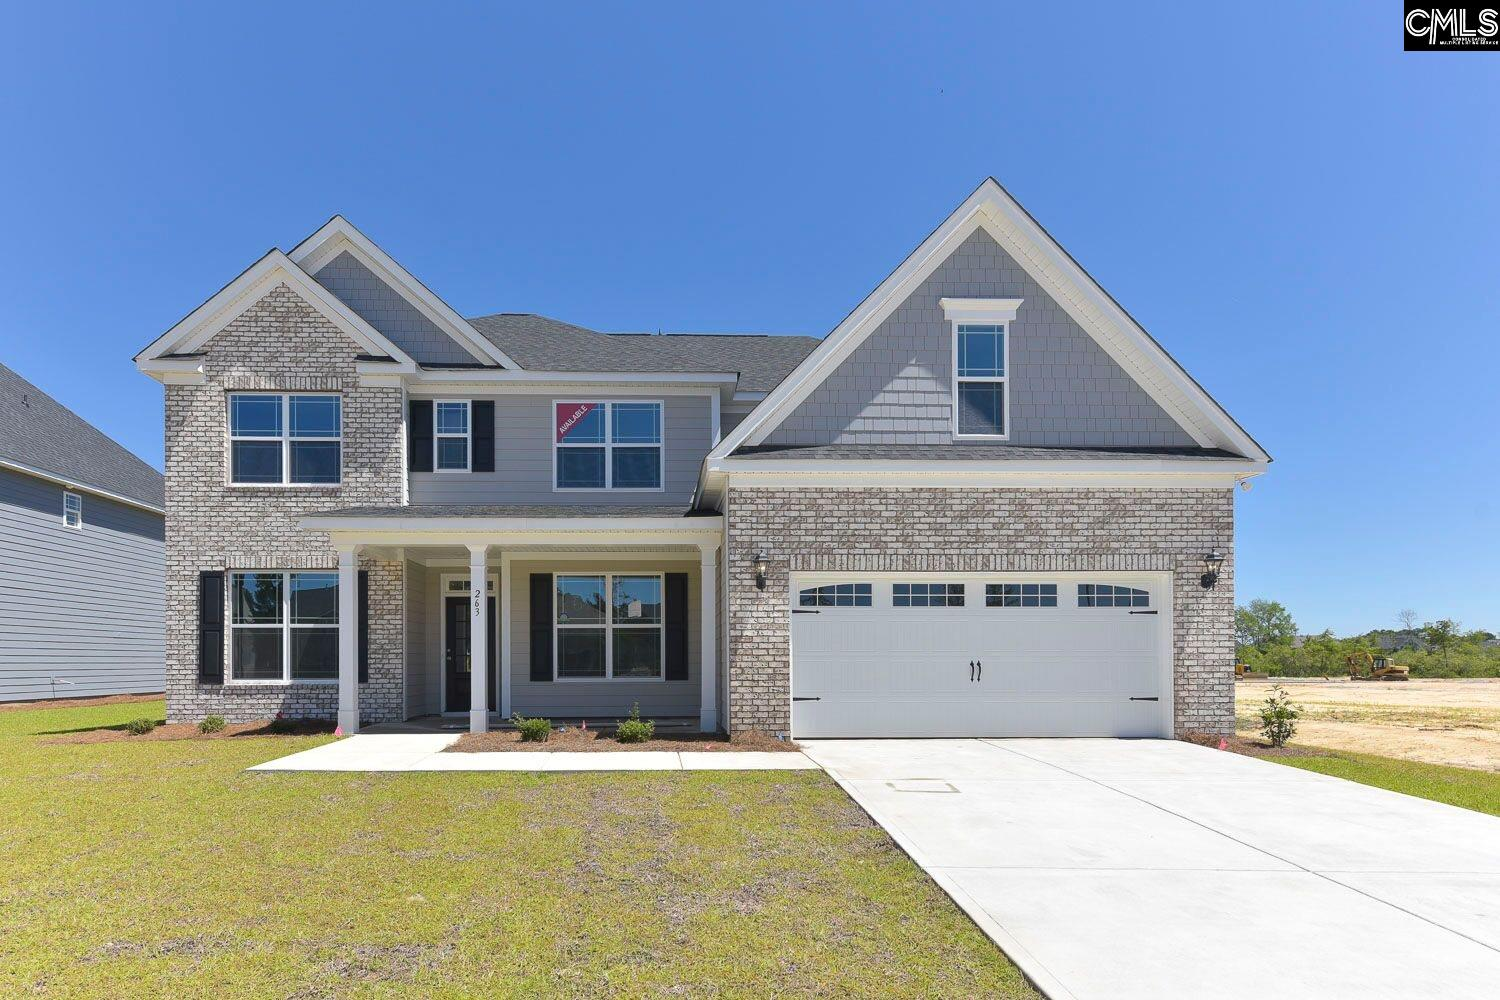 263 Coatbridge #67 Blythewood, SC 29016